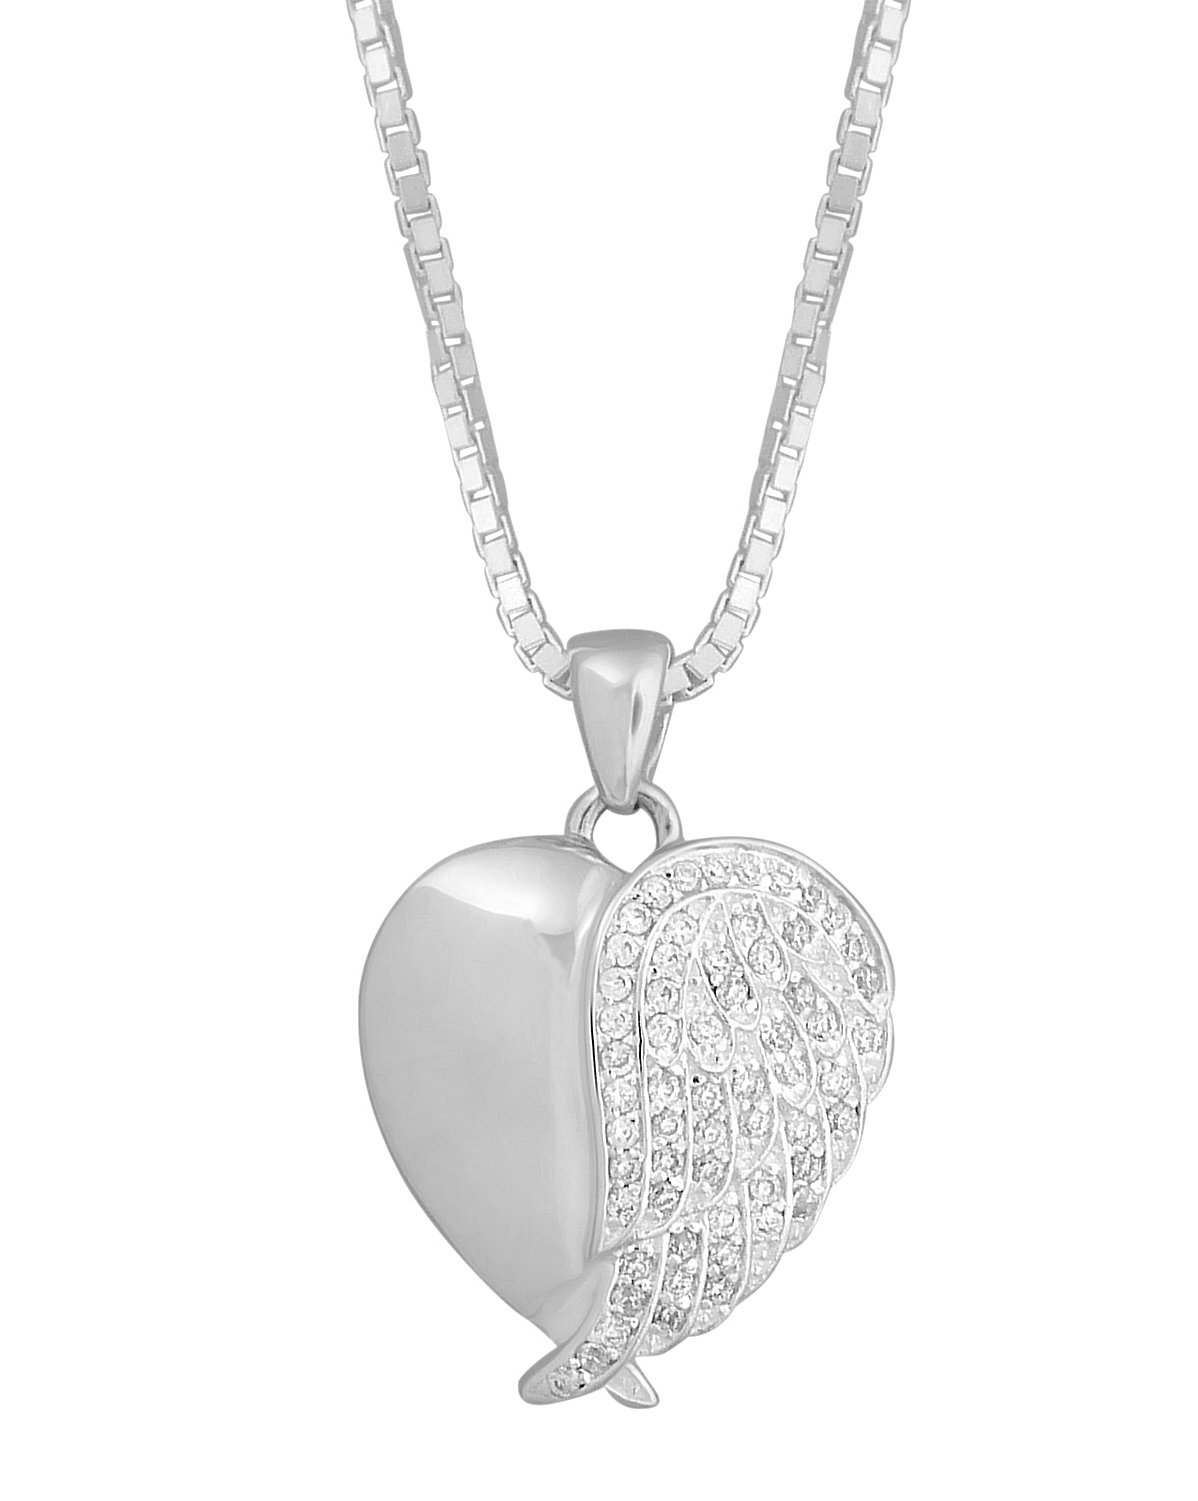 Sterling Silver With White CZ Stones Angel Wing Heart Urn Pendant 18 Inch Sterling Silver Box Chain